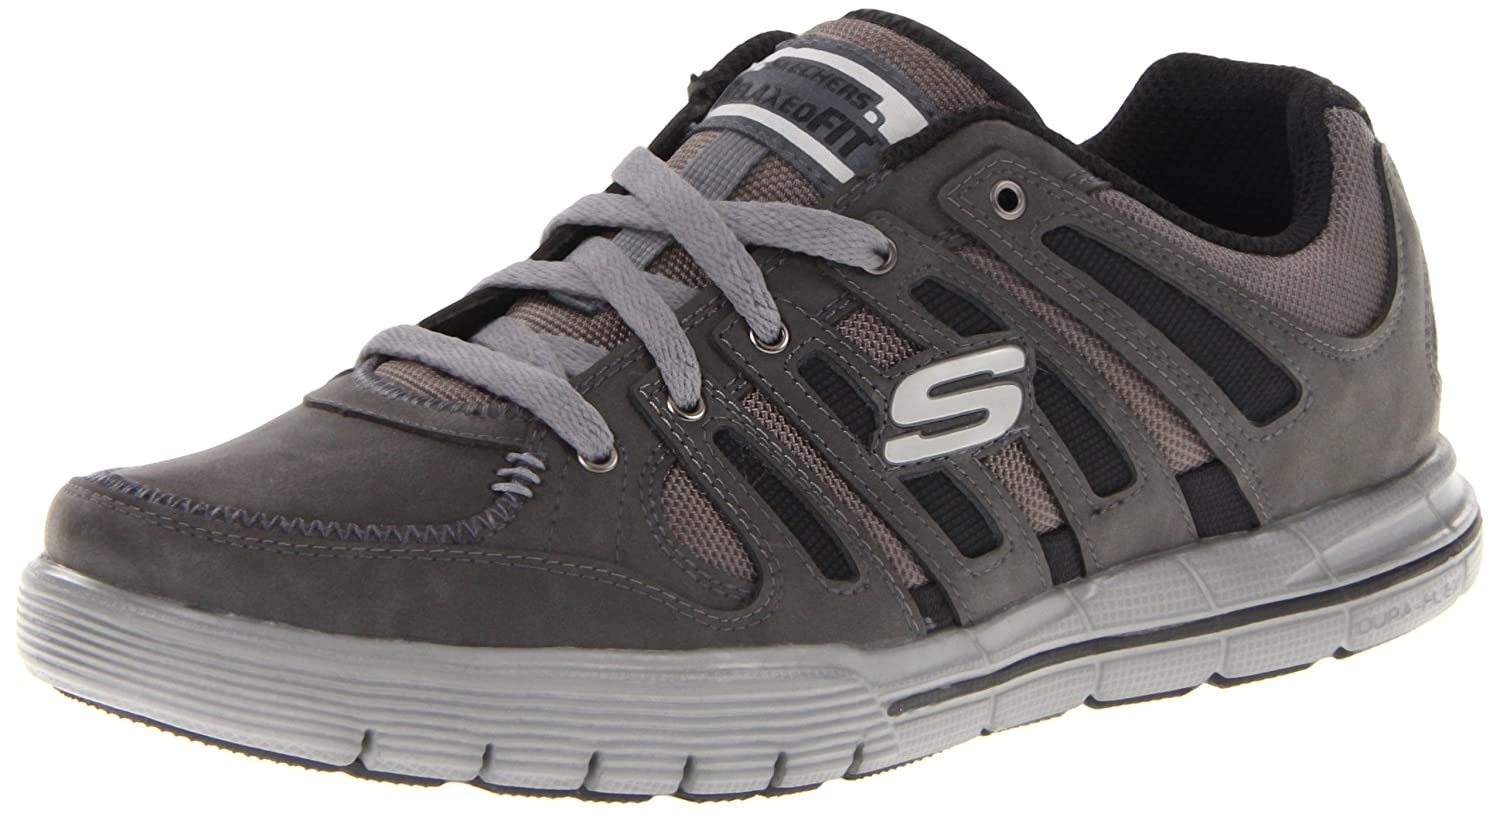 Vueltas y vueltas Actual defensa  skechers arcade ii circulate Sale,up to 73% DiscountsDiscounts